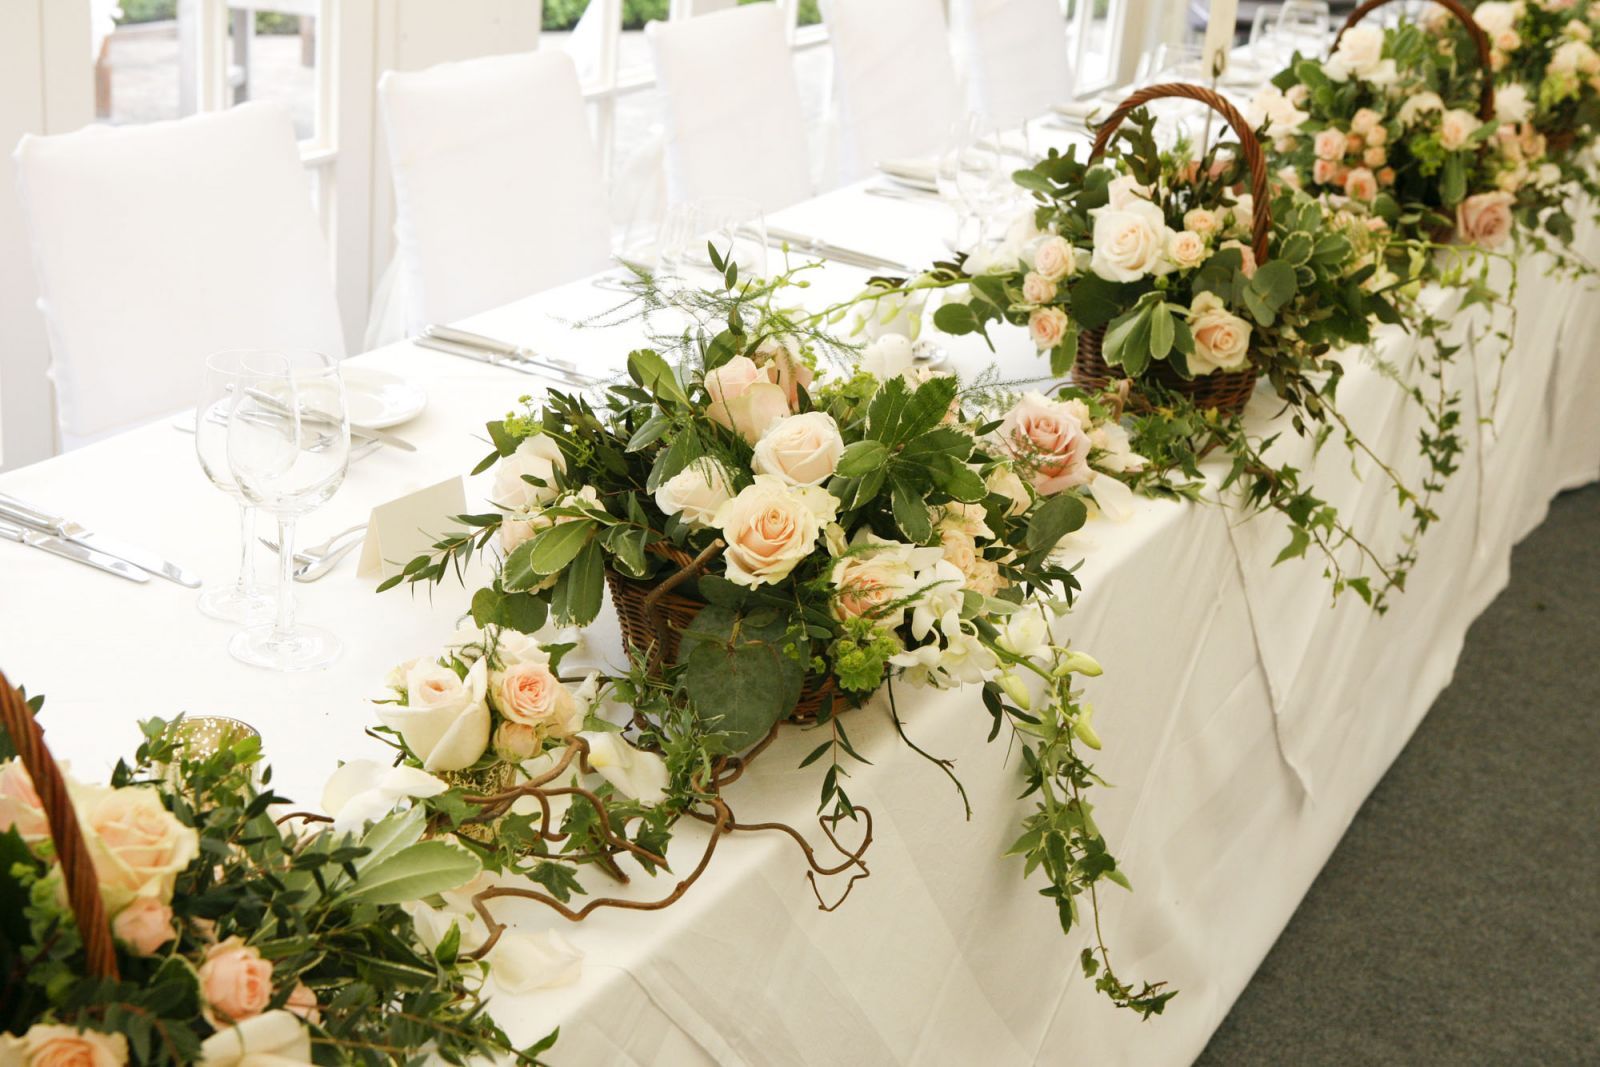 Wedding flowers how to style your top table our blog for Best wedding flower arrangements